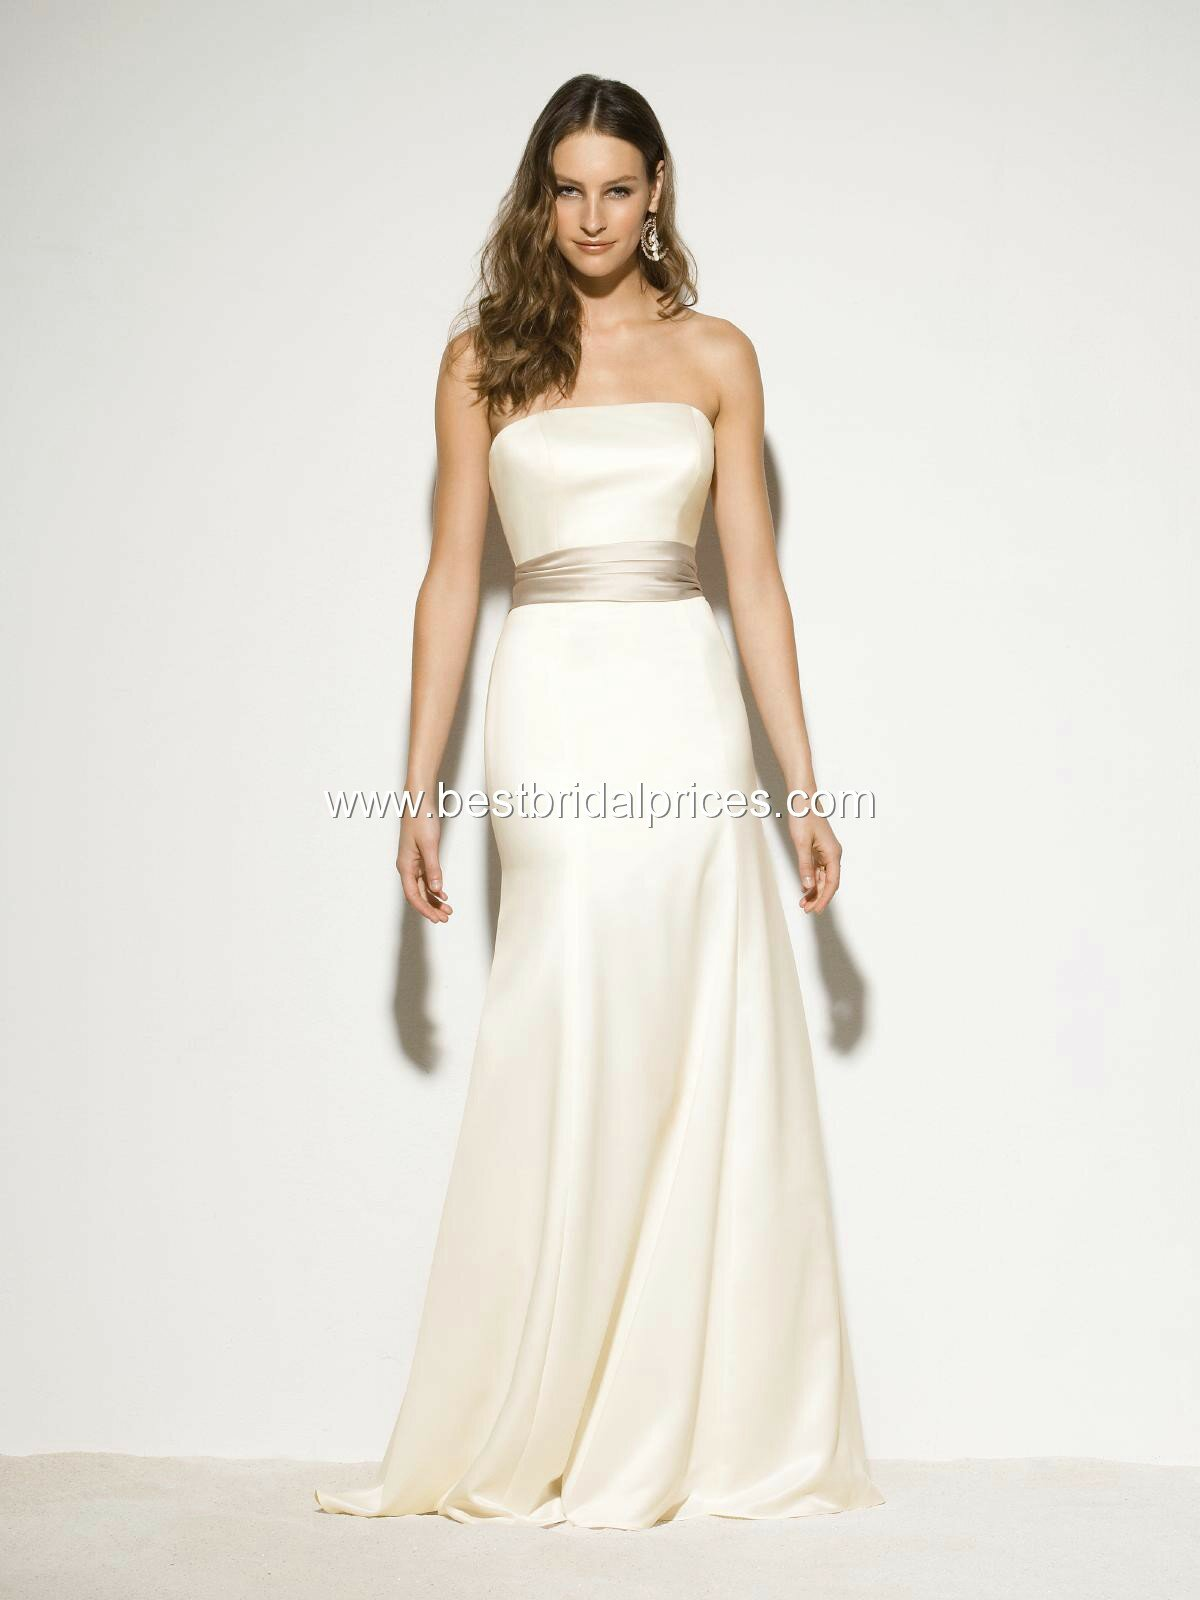 Wedding Dresses Sandals Pictures Ideas Guide To Buying Stylish